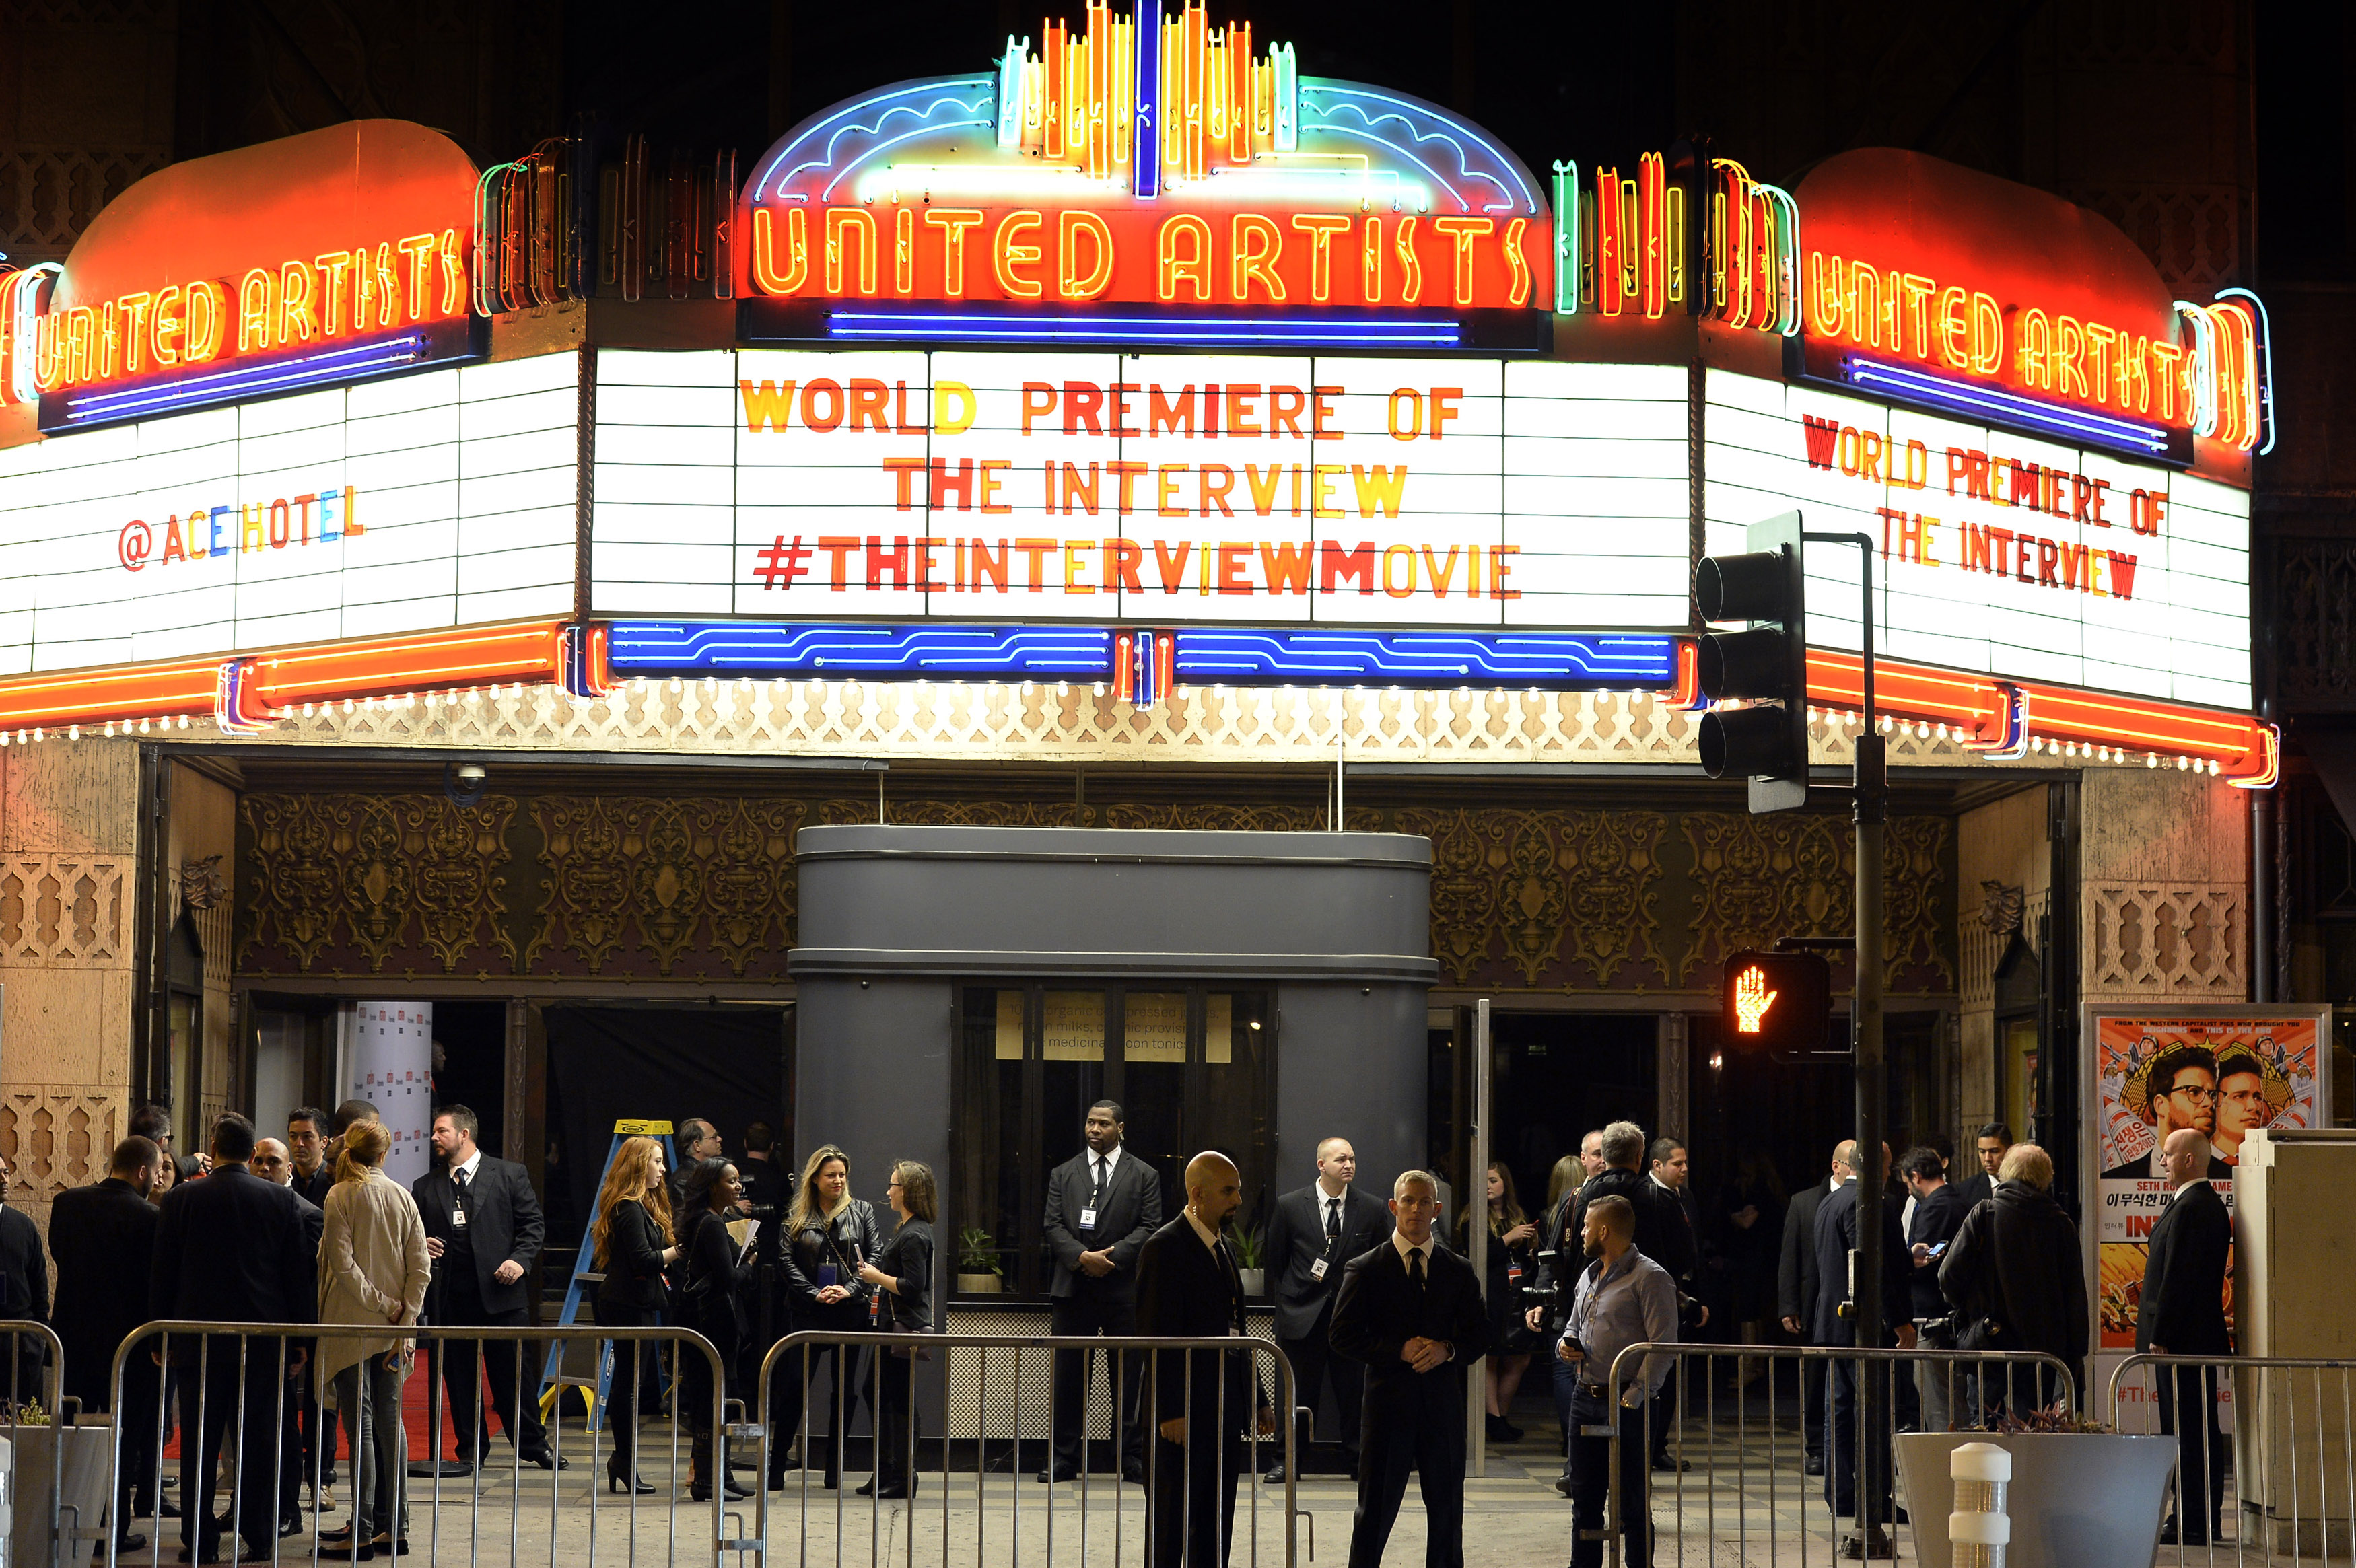 """Security guards stand behind bicycle rails at the entrance of United Artists theater during premiere of the film """"The Interview"""" in Los Angeles, California December 11, 2014."""